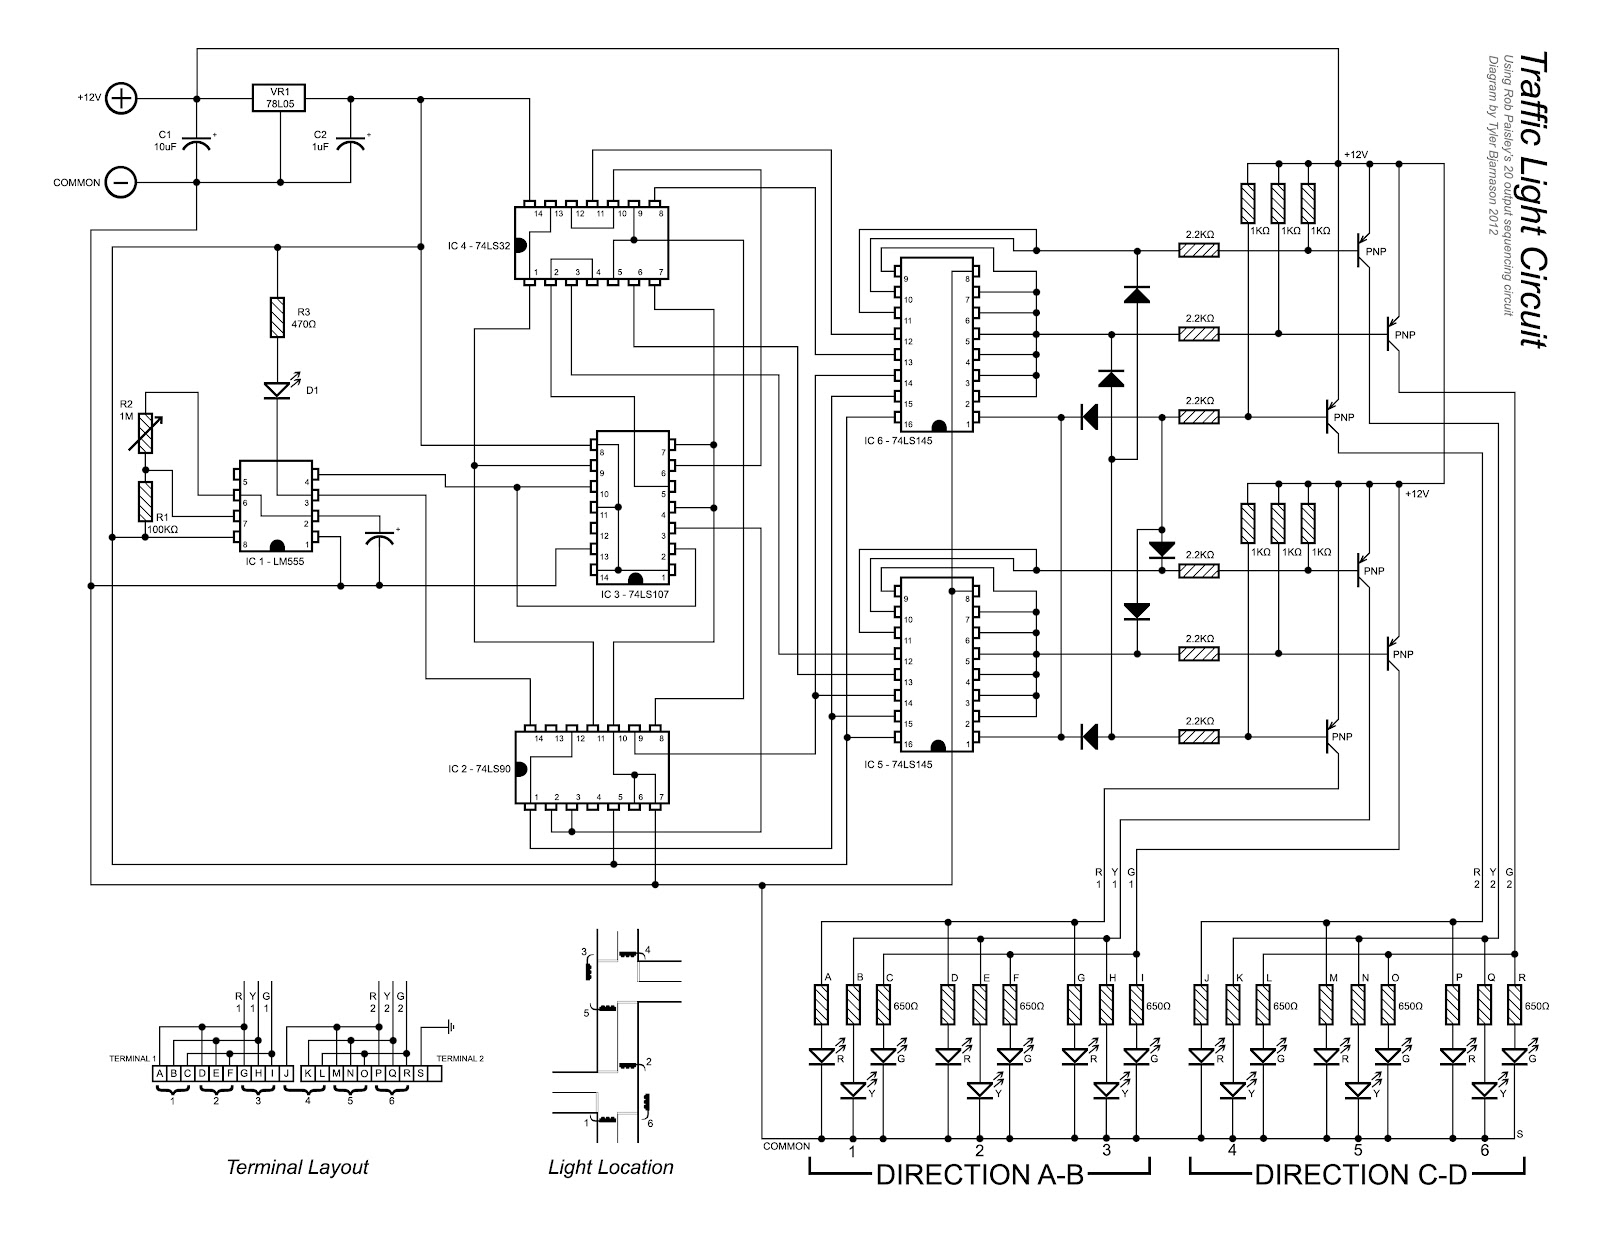 Wiring diagram for traffic light controller circuit